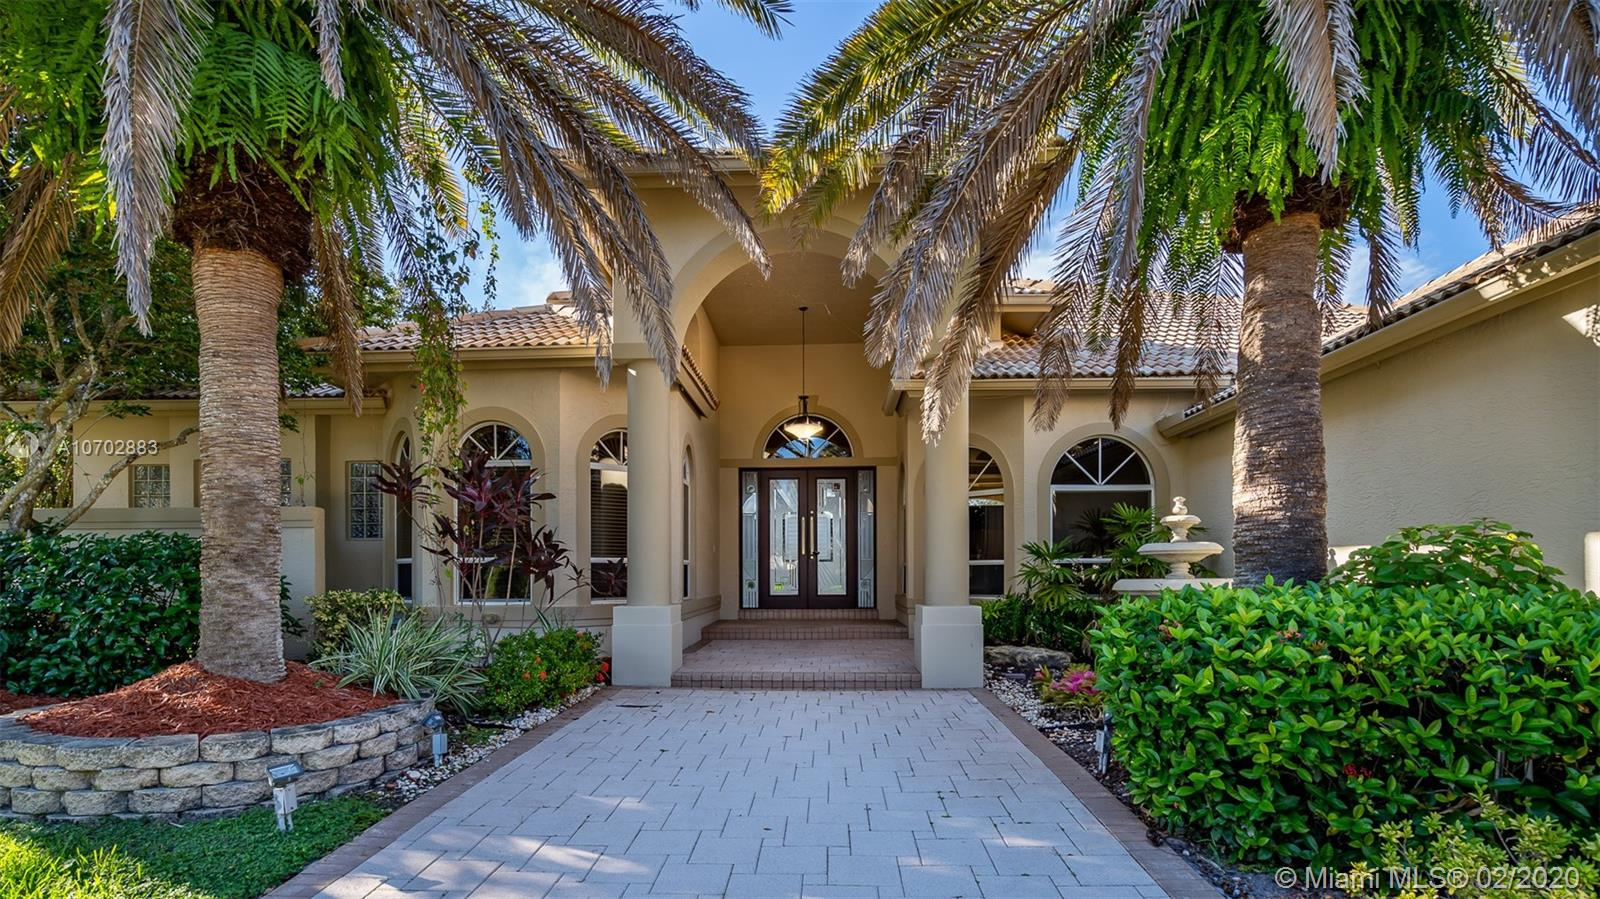 Taking back up offers. Beautifully updated in 2020. Fabulous lake front home in Pelican Landing .5 bedrooms plus office, 4 full,2 half bathrooms. Oversize en suite bedrooms,  and expansive  fenced lot with pool and spa. Spectacular sunset lake views. A must see.